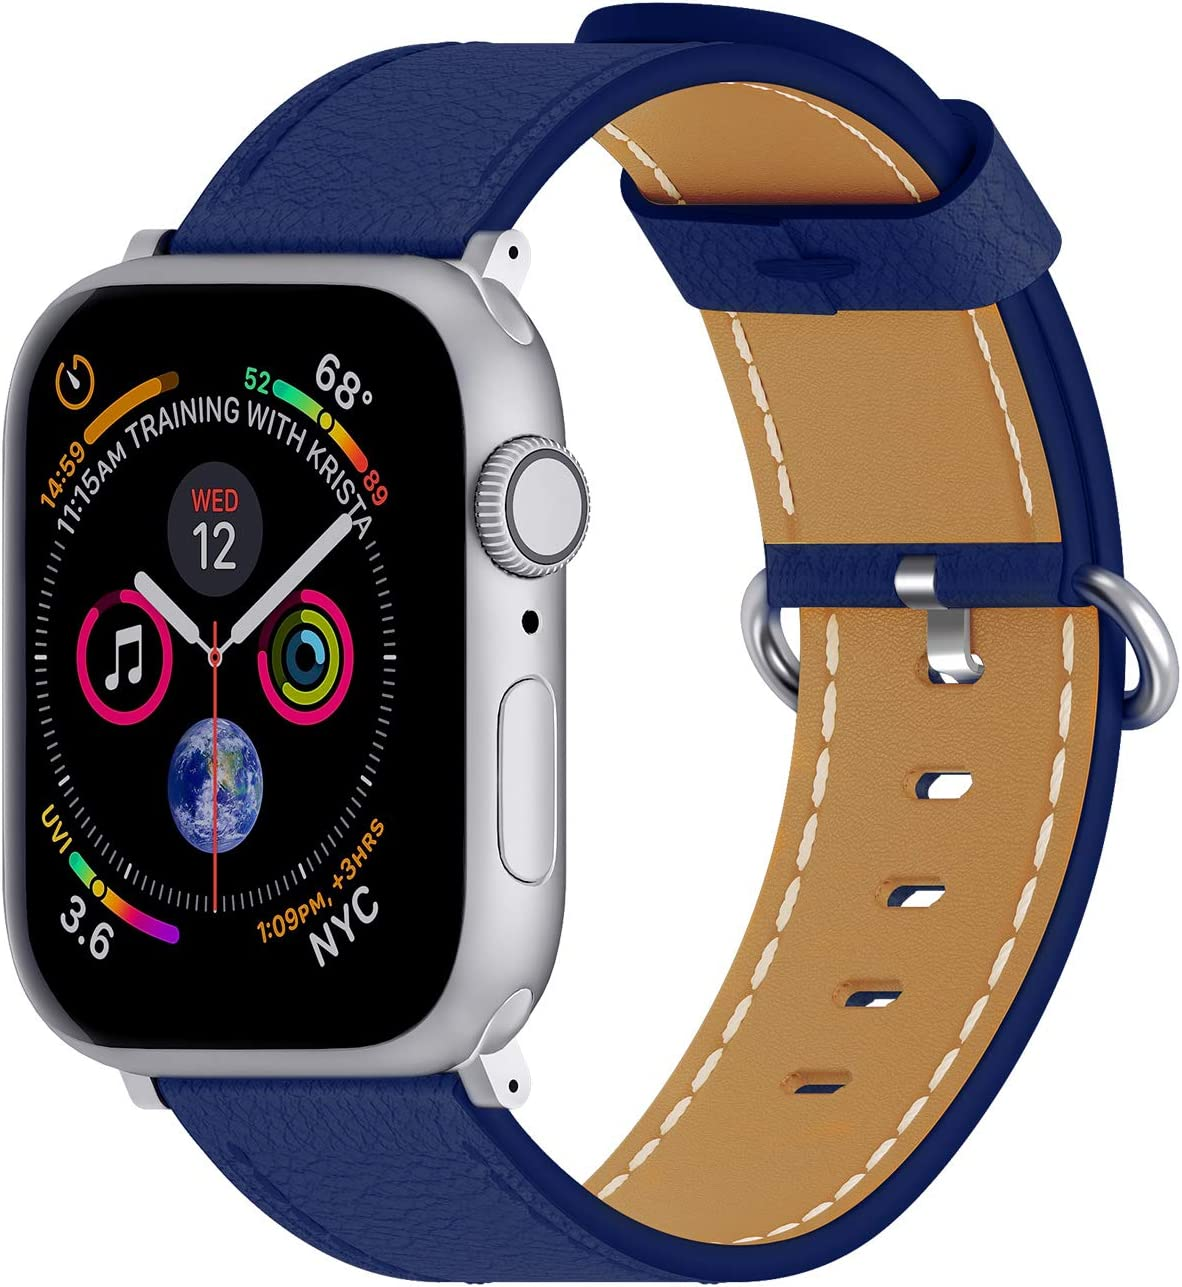 ARTCHE Compatible with iWatch Band 40mm 38mm, Soft Cowhide Leather Replacement Bands Watch Strap for Apple Watch Series SE 6 5 4 3 2 1, for Men and Women, Deep Blue